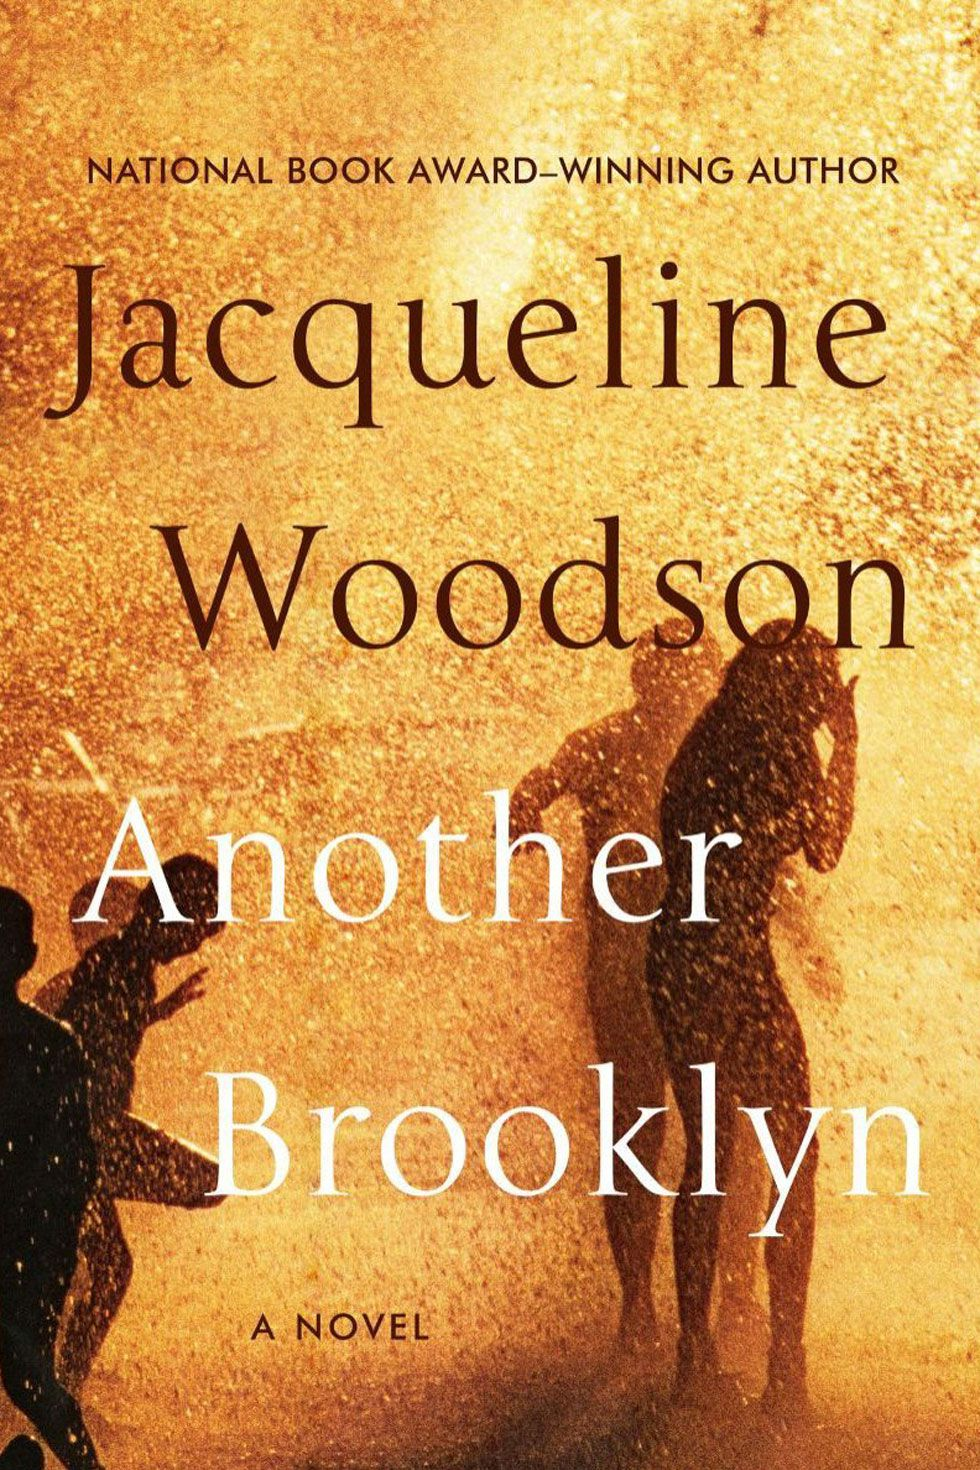 Another Brooklyn, by Jacqueline Woodson